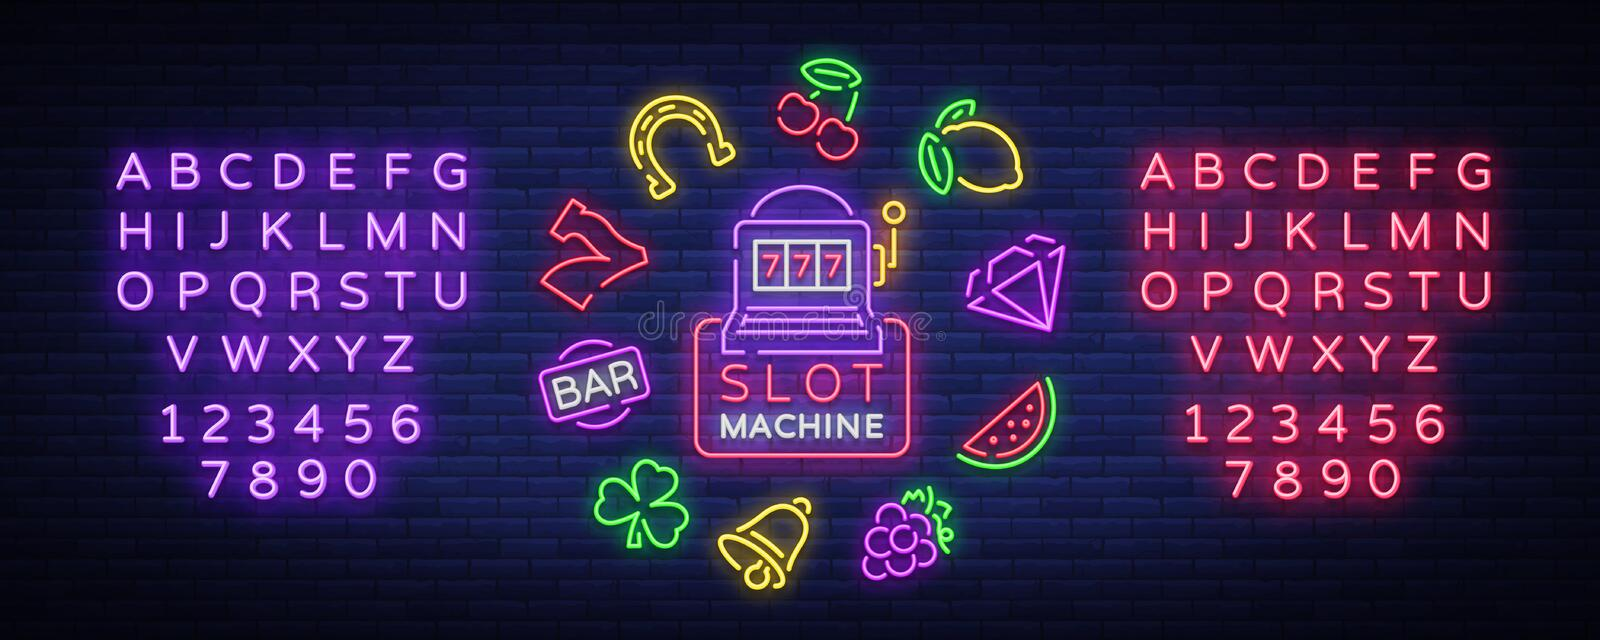 Slot machine is a neon sign. Collection of neon signs for a gaming machine. Game icons for casino. Vector Illustration stock illustration